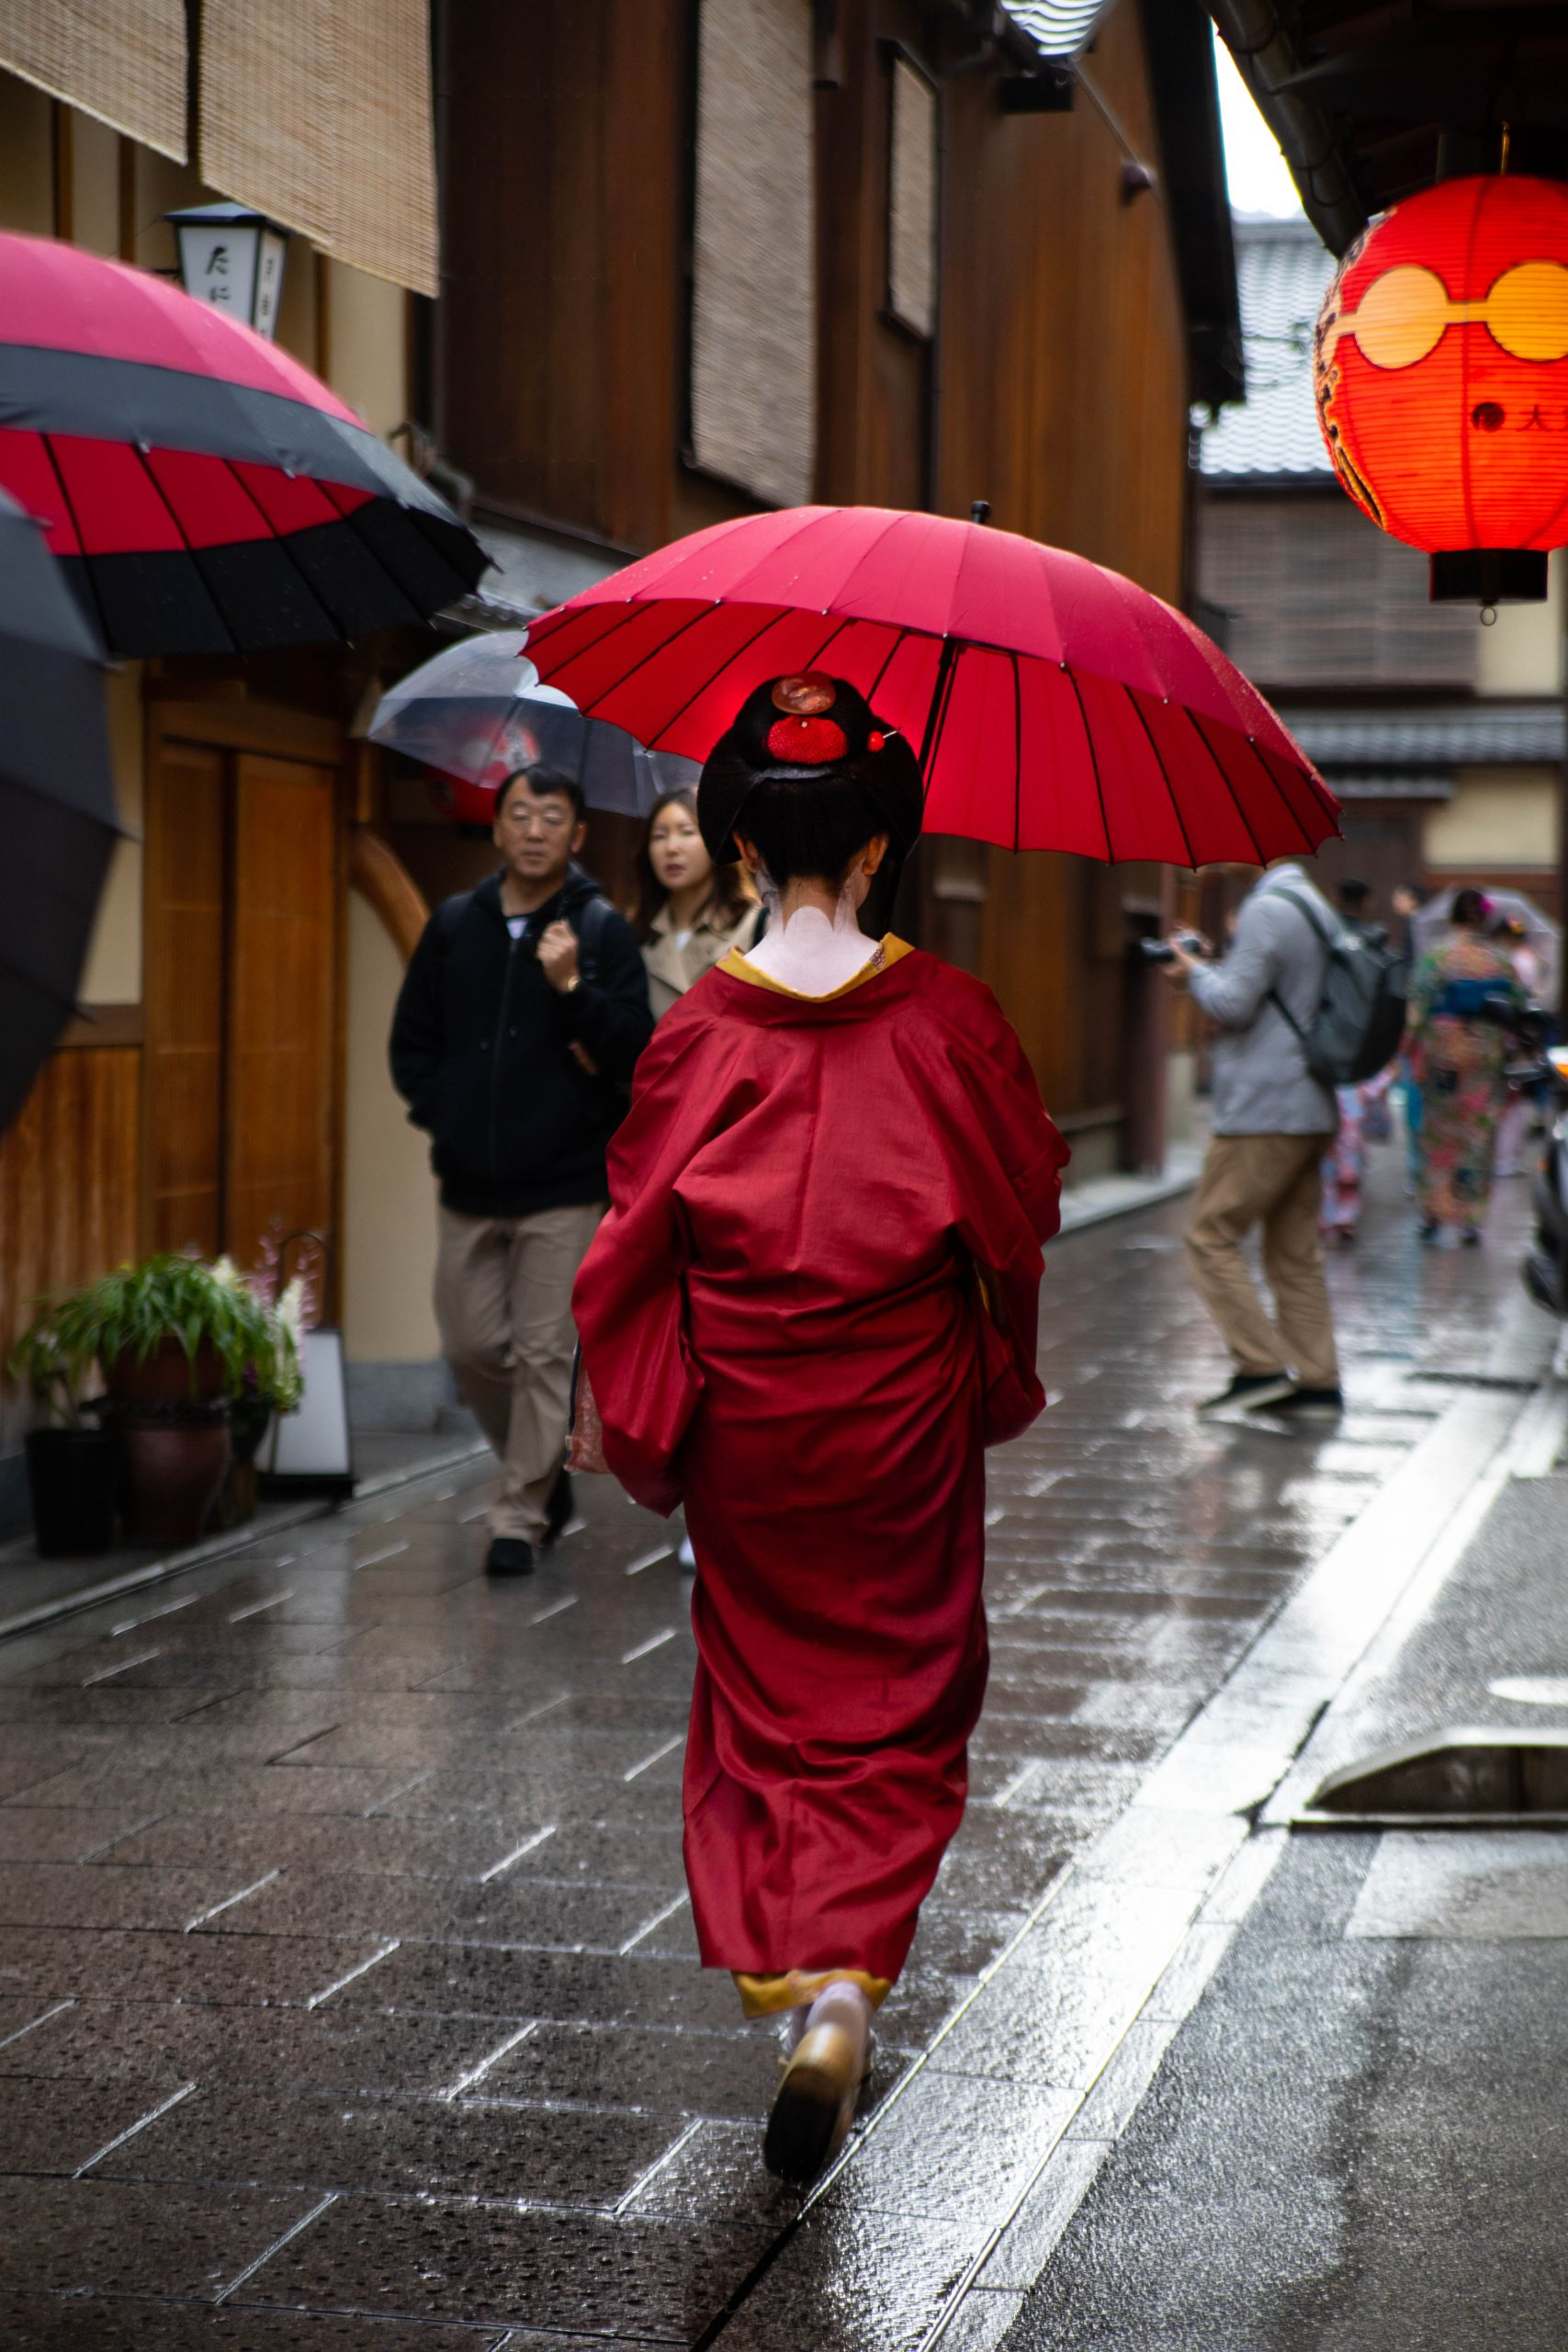 Geisha Maiko Apprentice Walking to Work in Kimono in Gion, Kyoto, Japan